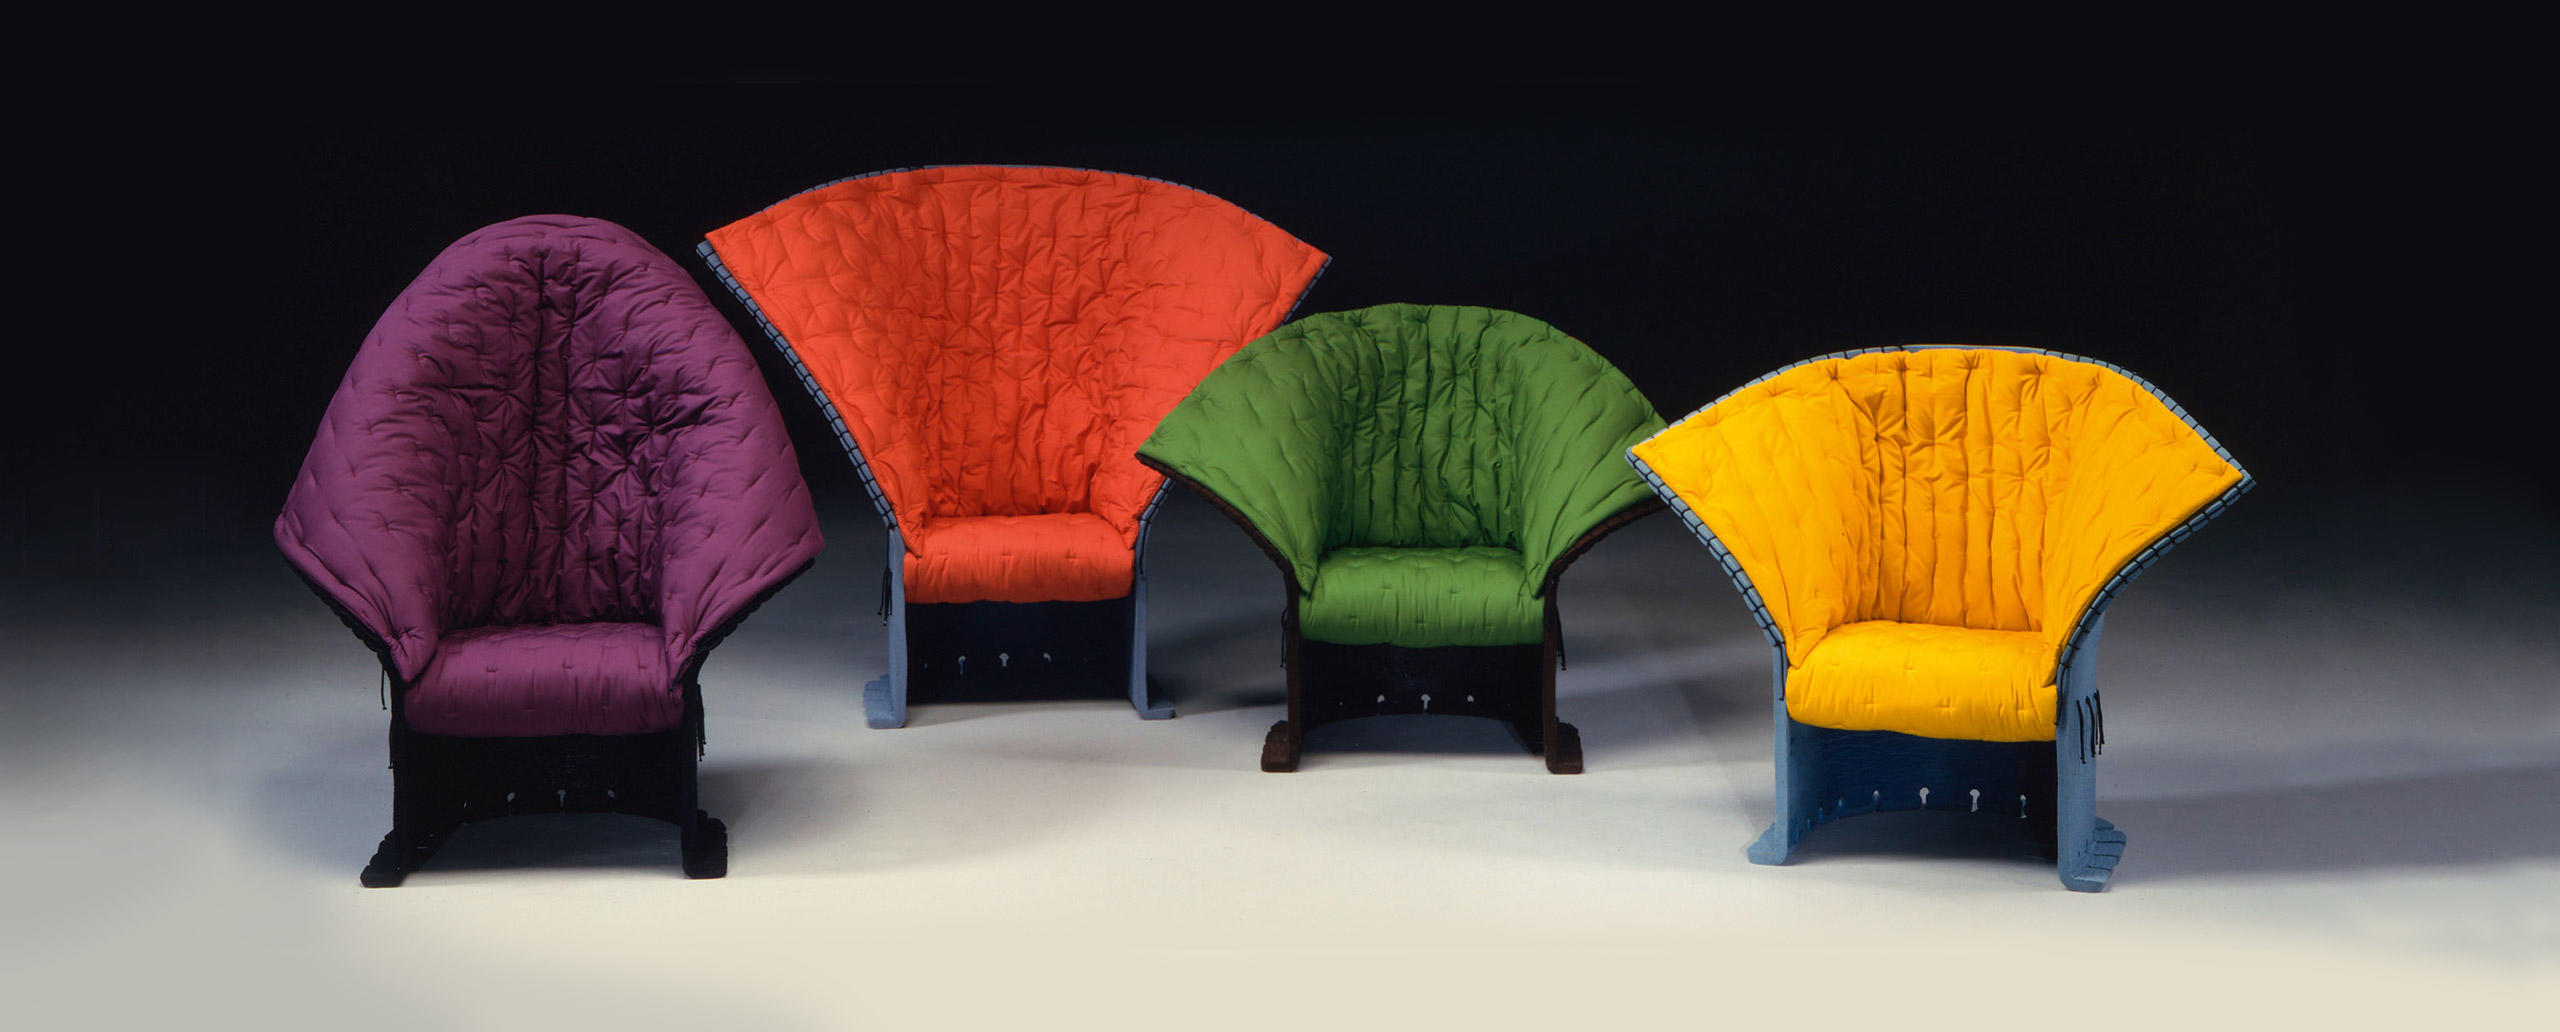 The Wonders of The Italian Arts and Crafts: Behind The Scenes craftsmanship Behind the Scenes: Get Inspired by the Italian Craftsmanship The Most Exquisite Italian Craftsmanship Feltri Armchairs Gaetano Pesce